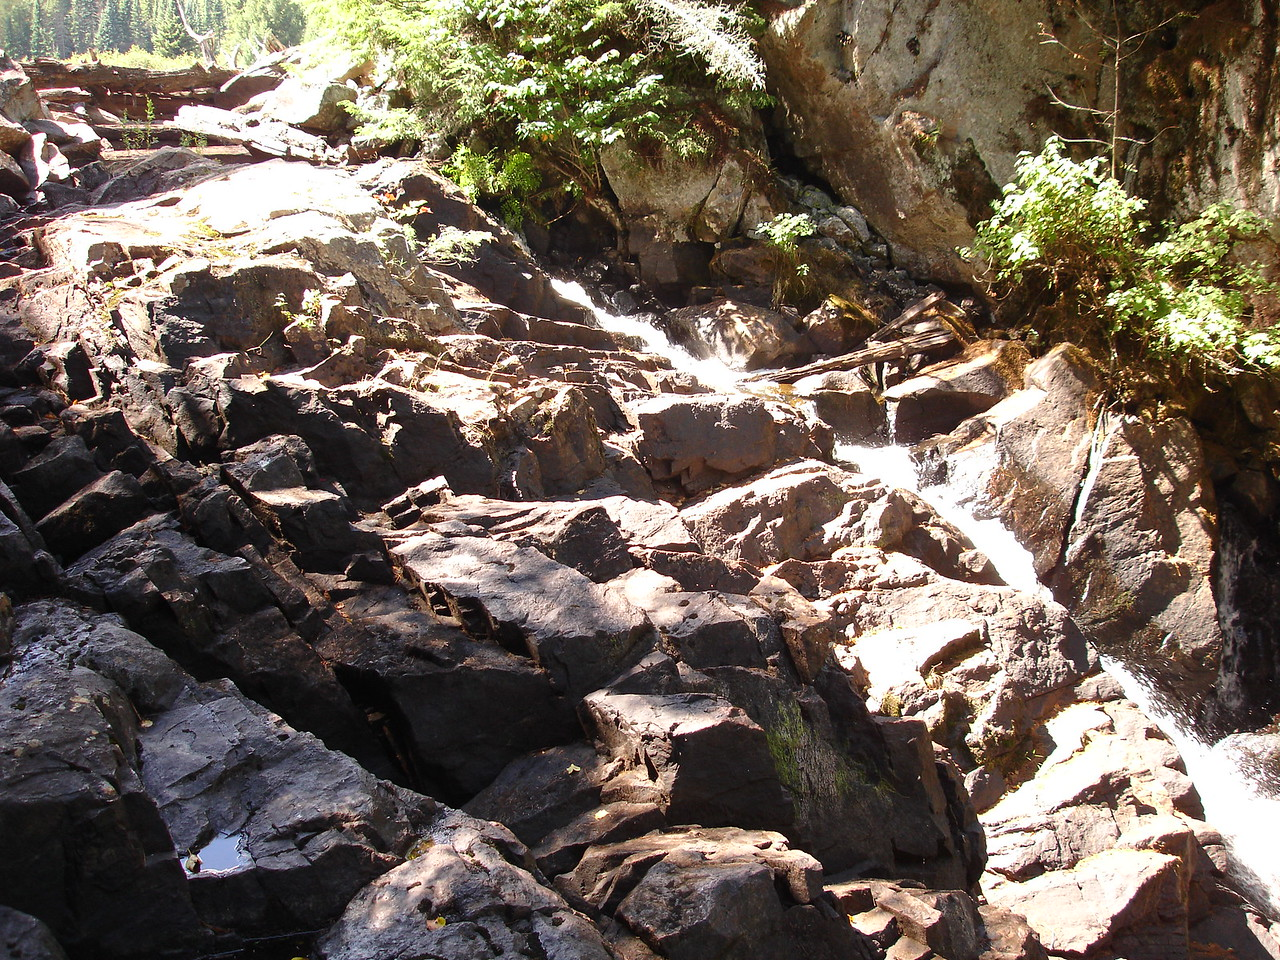 The 355 m portage circumvents this waterfall, which is just a trickle this year.